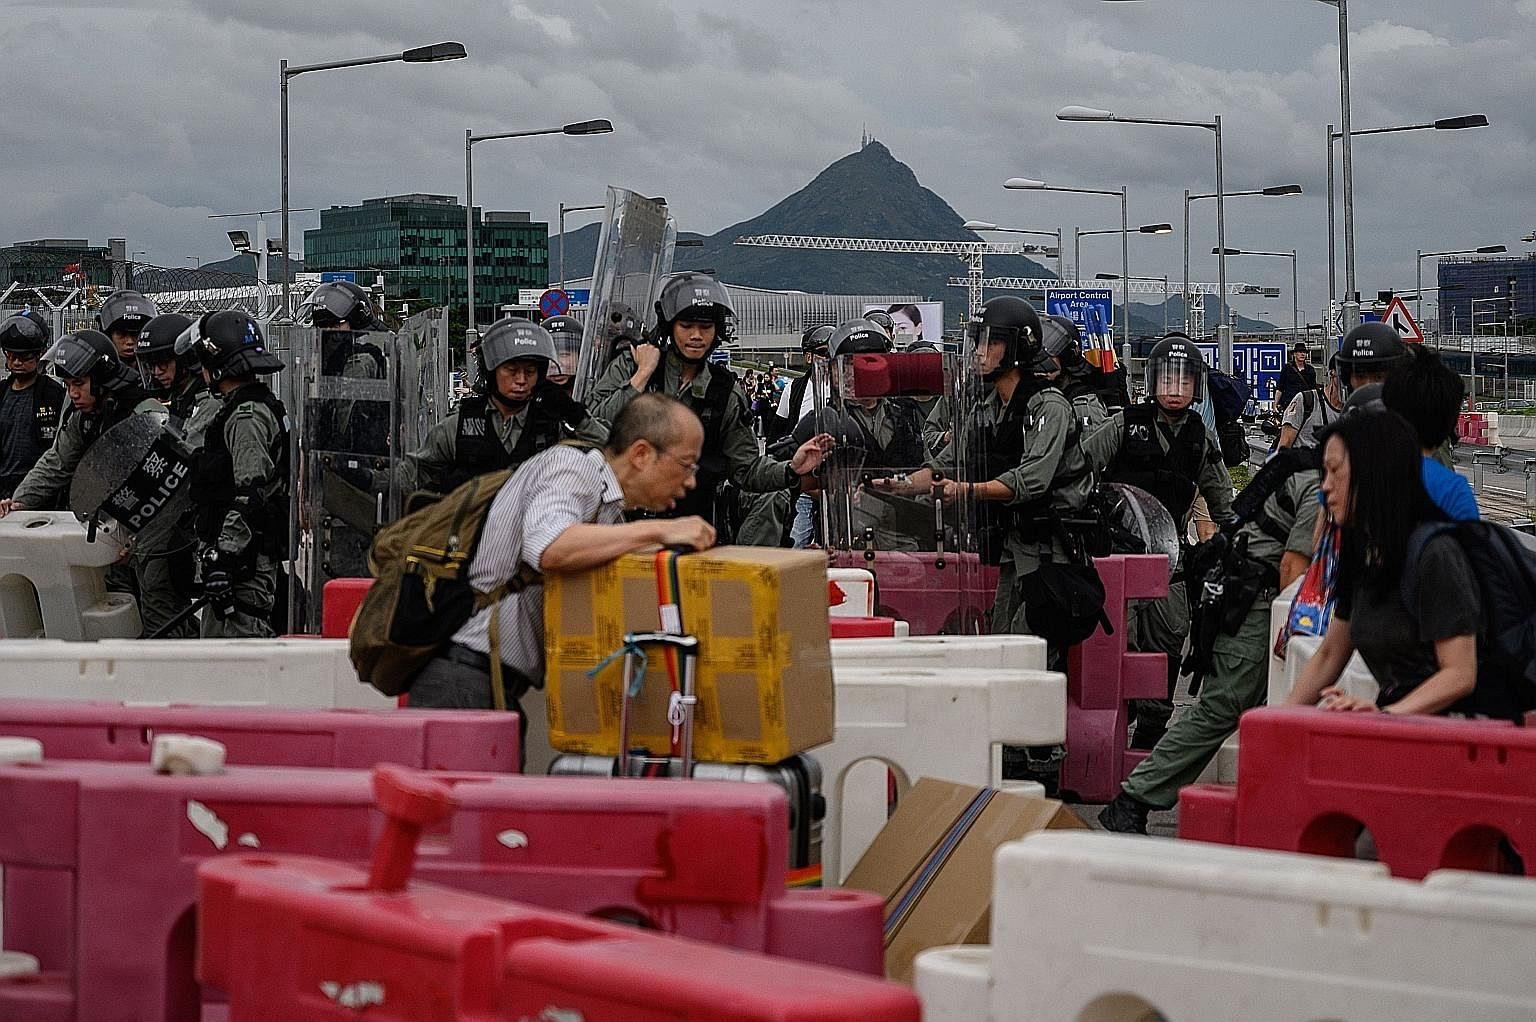 Hong Kong police removing barricades set up on the road by protesters as passengers walked with their luggage to Hong Kong International Airport yesterday. Thousands of anti-government protesters choked routes leading to the airport yesterday, buildi